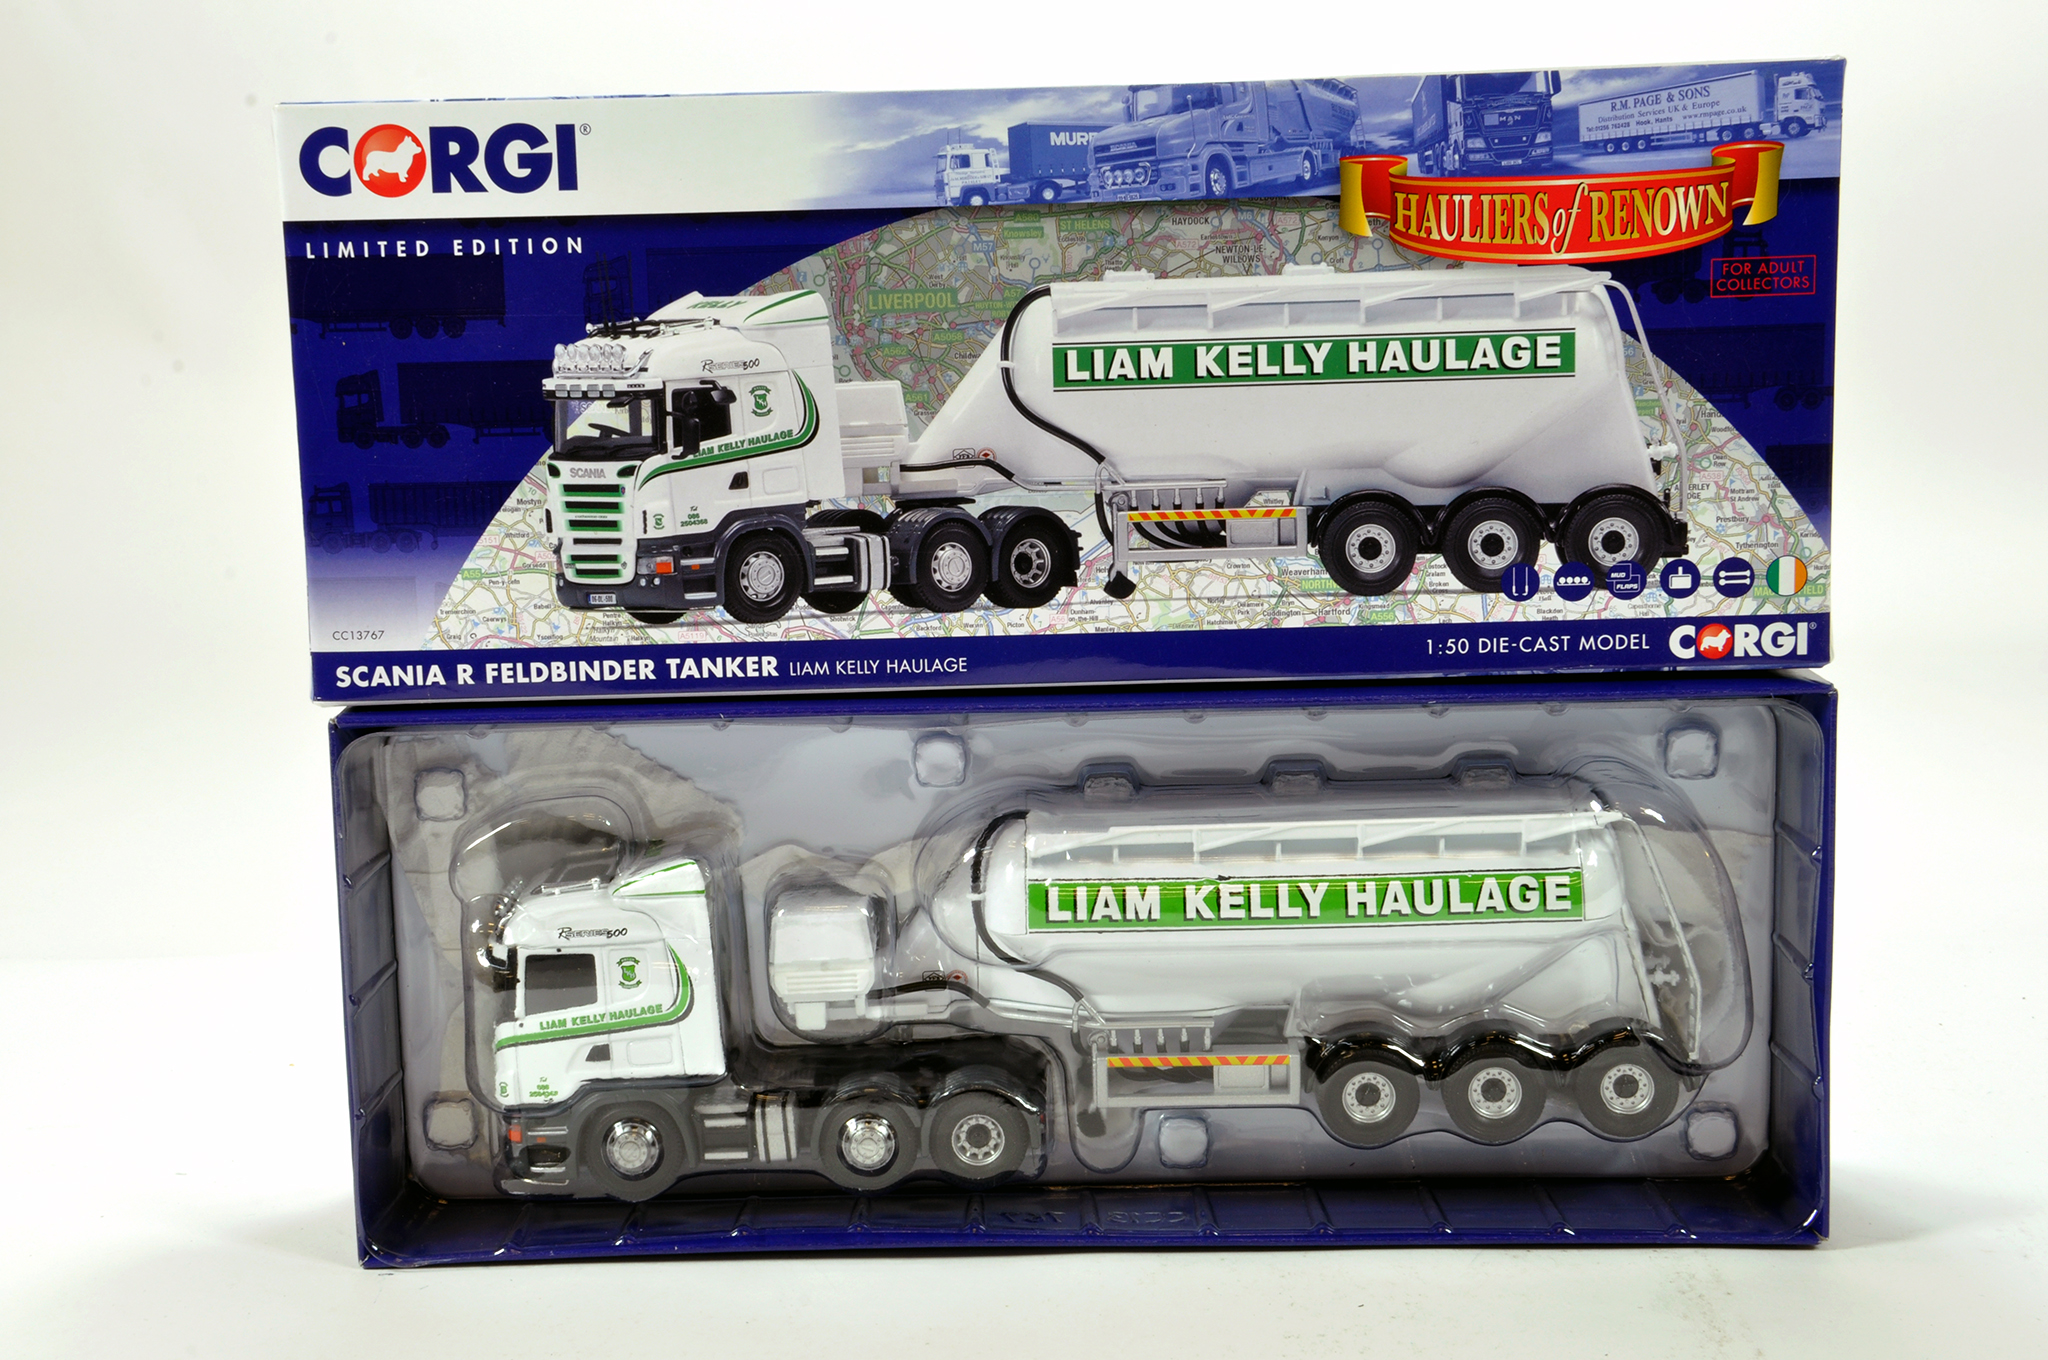 Lot 46 - Corgi 1/50 diecast truck issue comprising No. CC13767 Scania R Feldbinder Tanker in livery of Liam